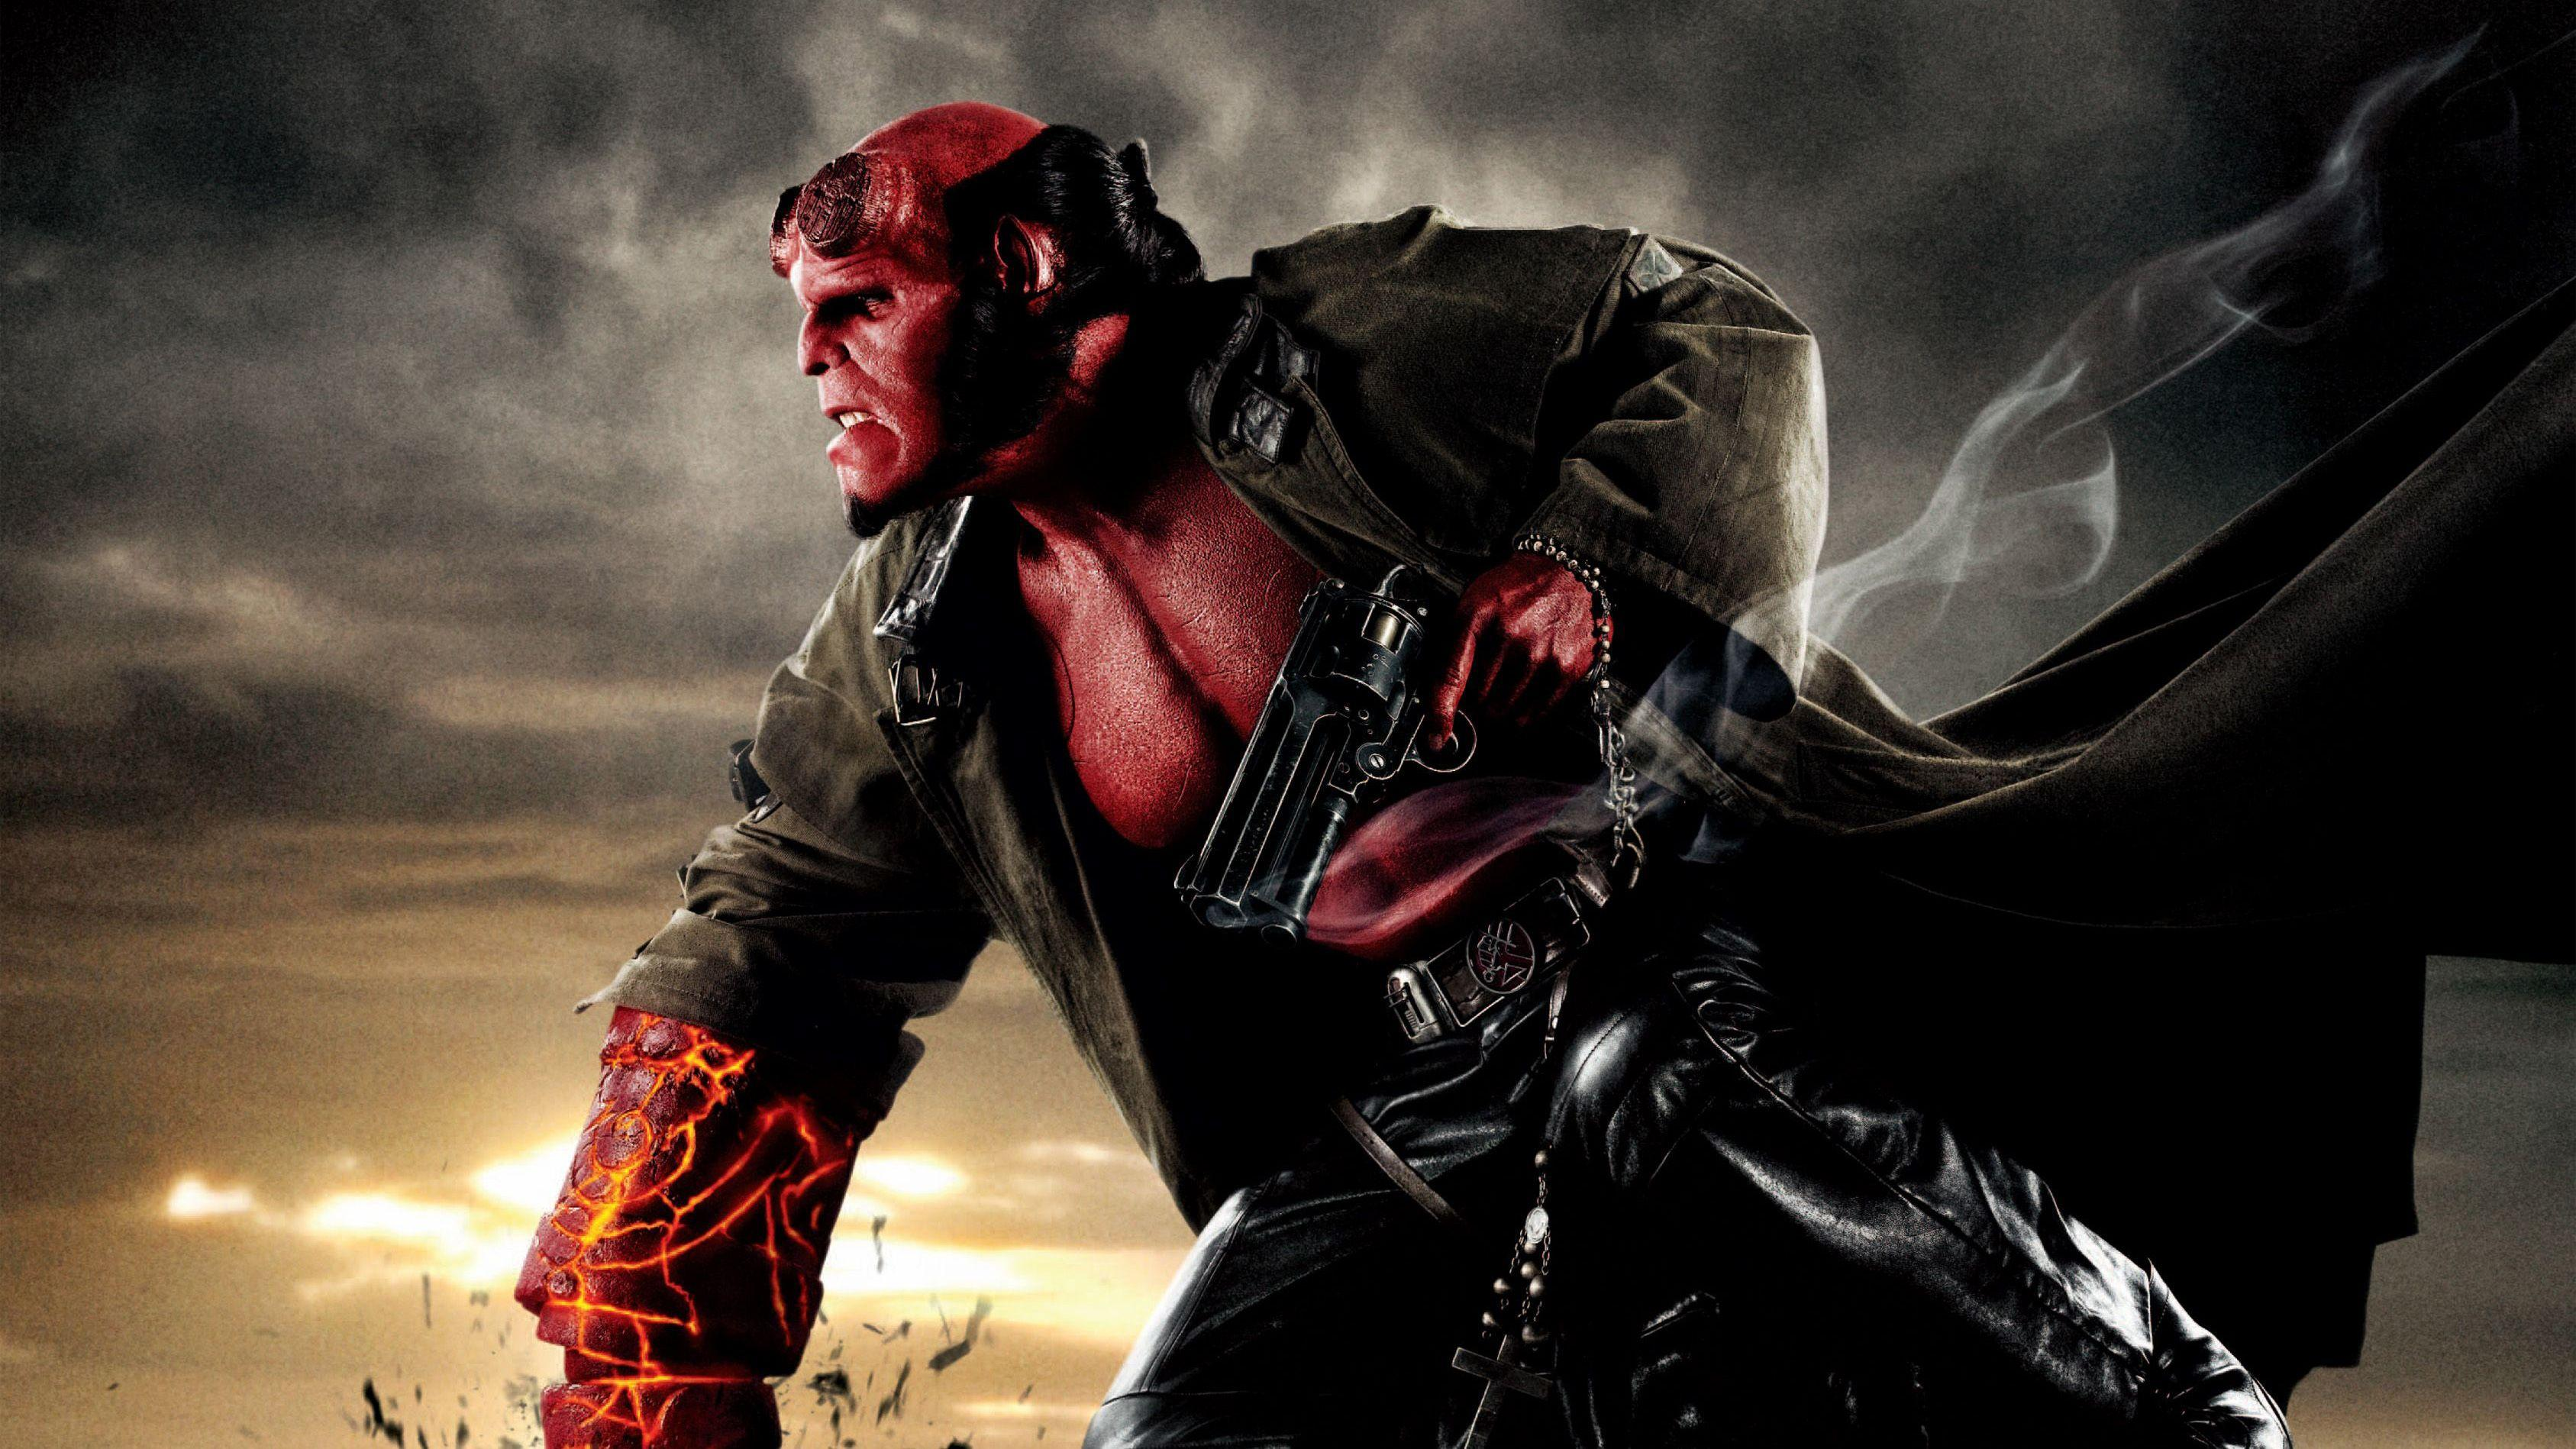 Movie Poster 2019: Hellboy 2019 Wallpapers